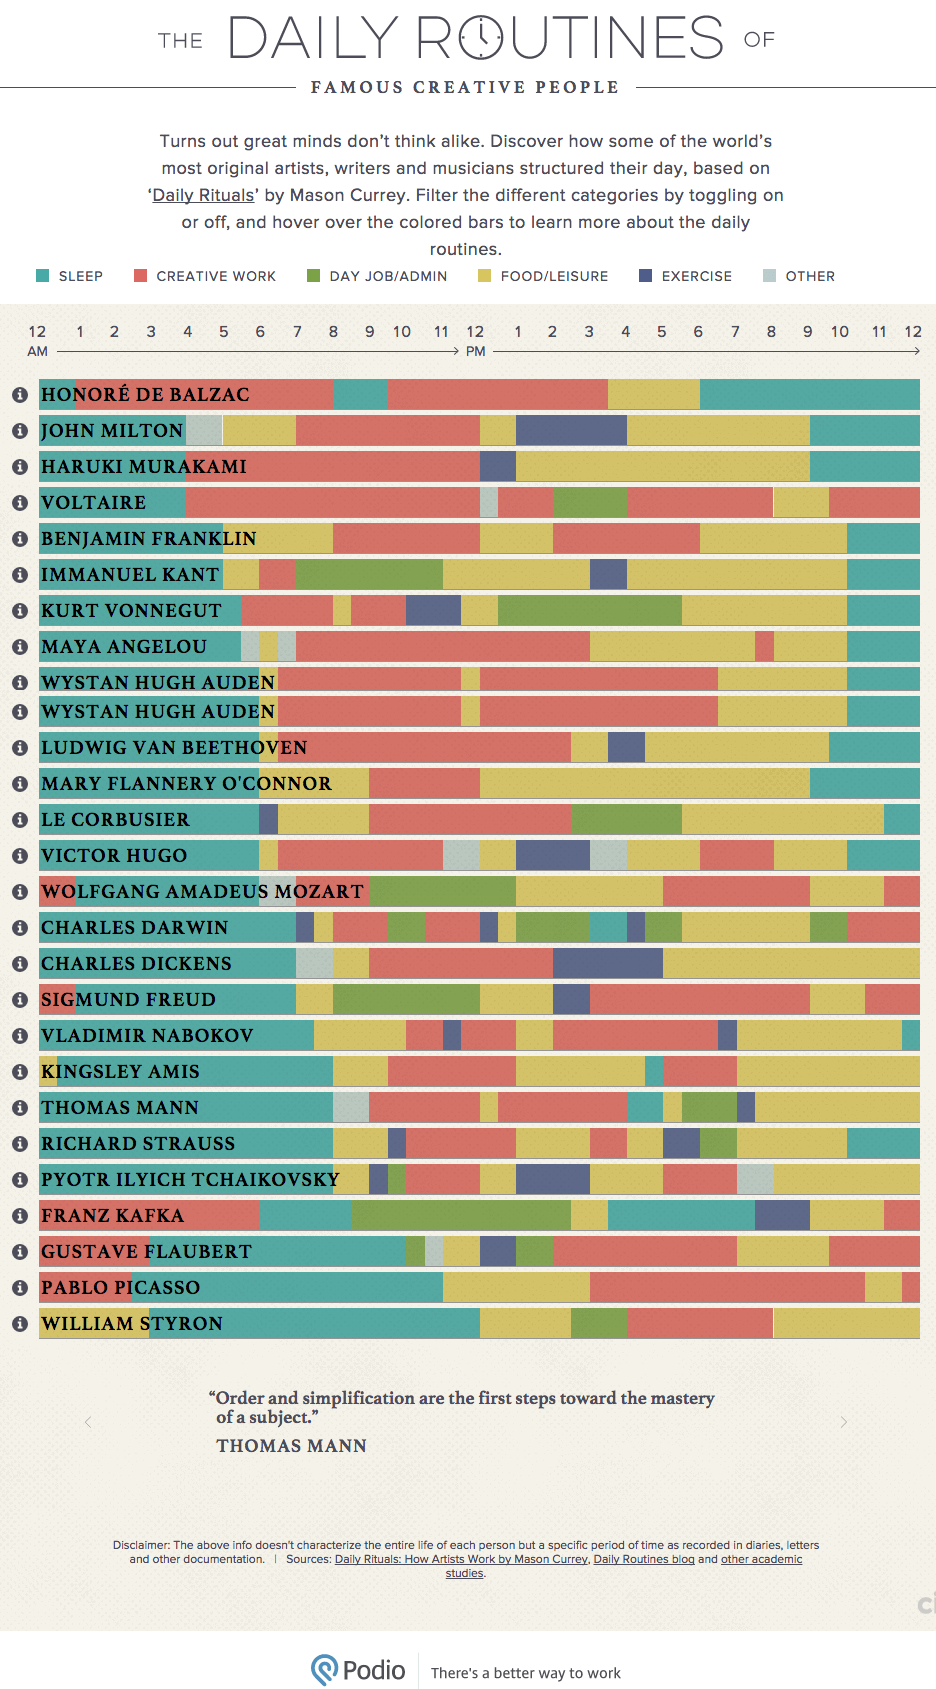 routines-of-creative-people-infographic.png